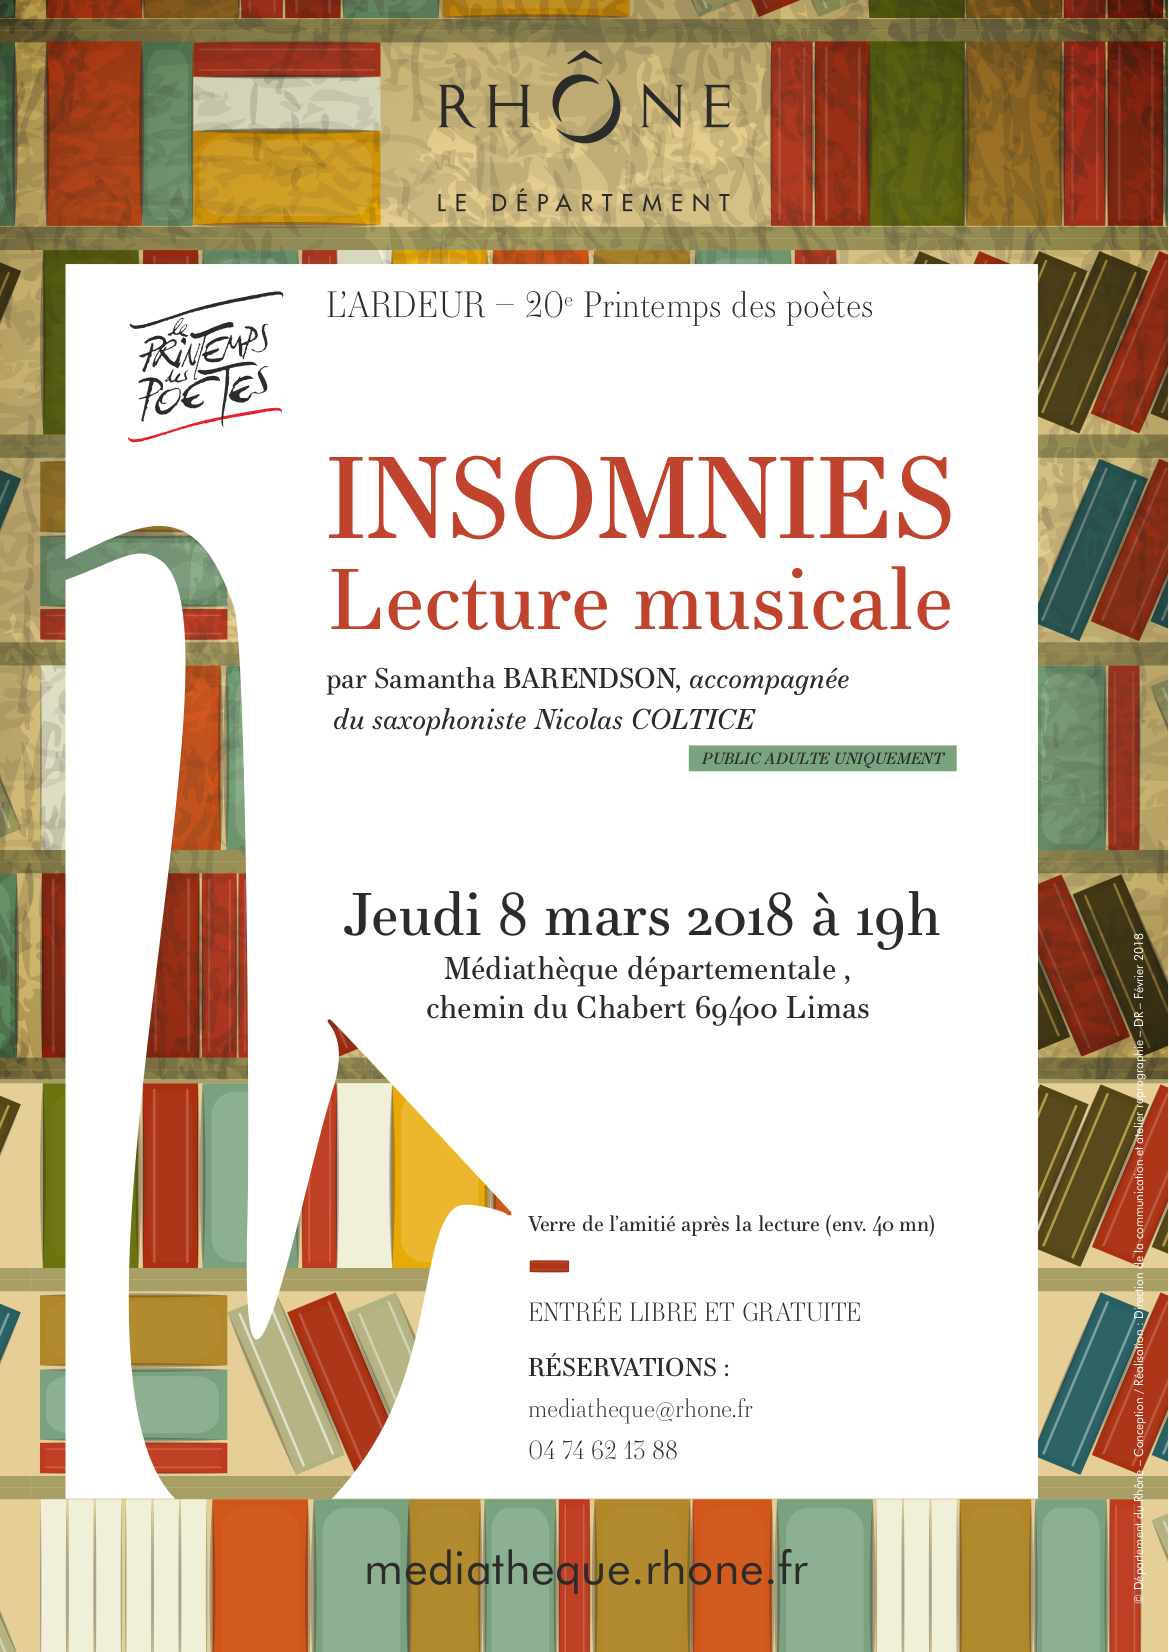 A3 insomnies 2108 8 mars